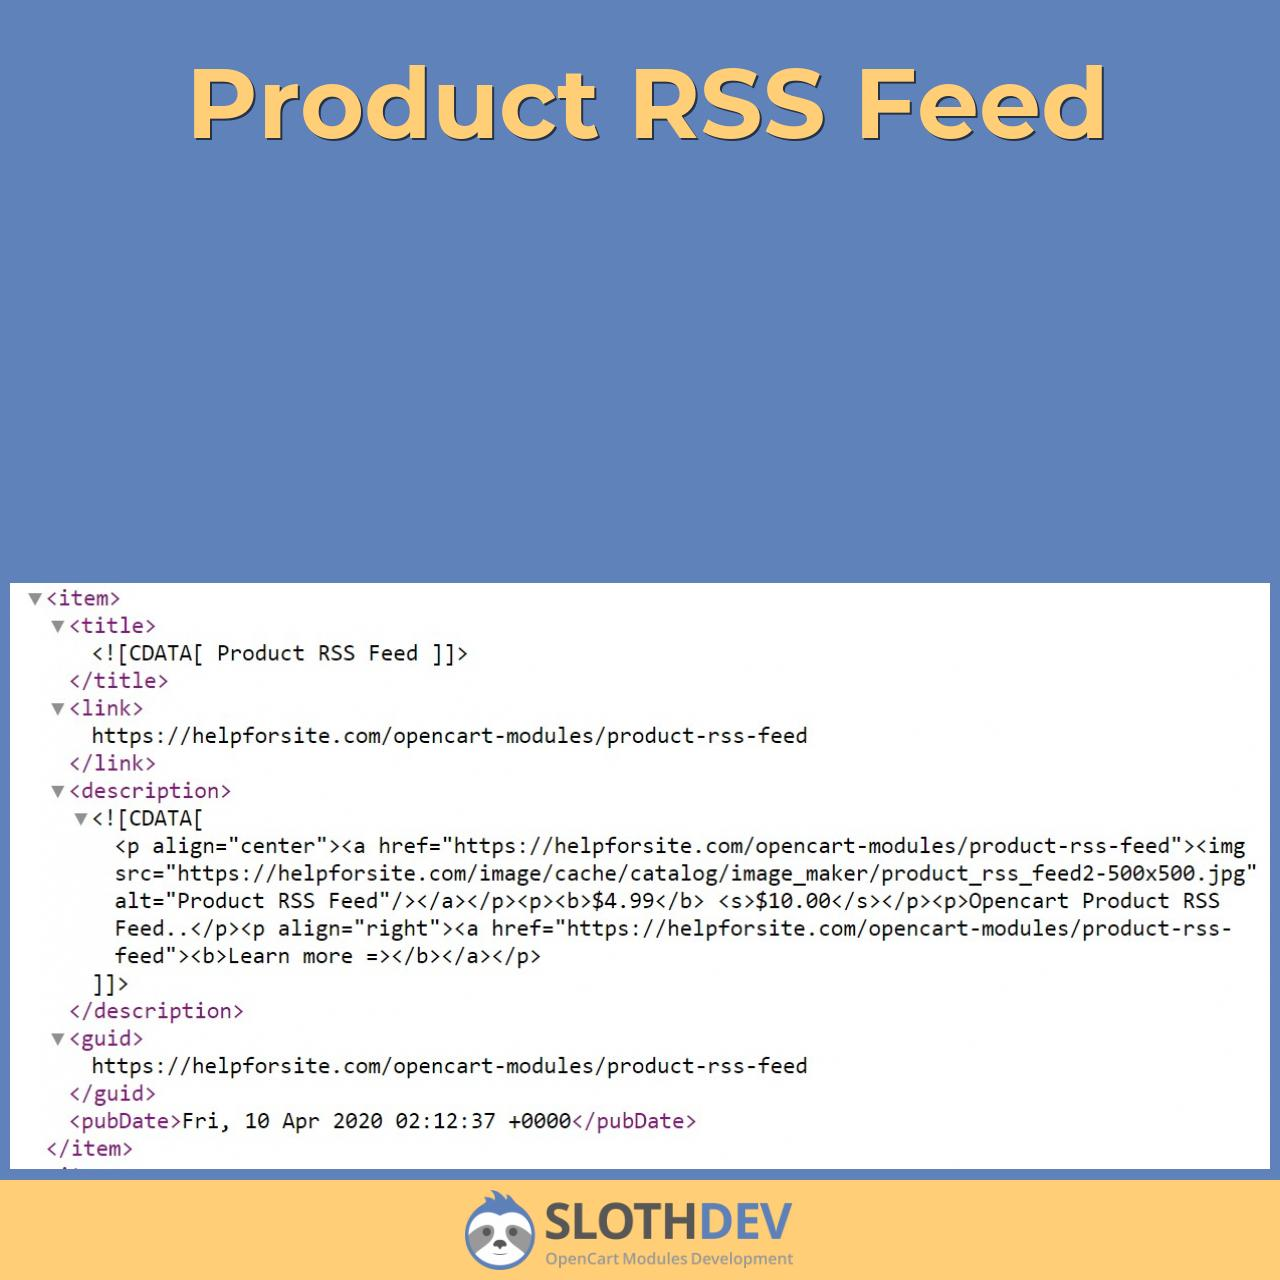 Product RSS Feed